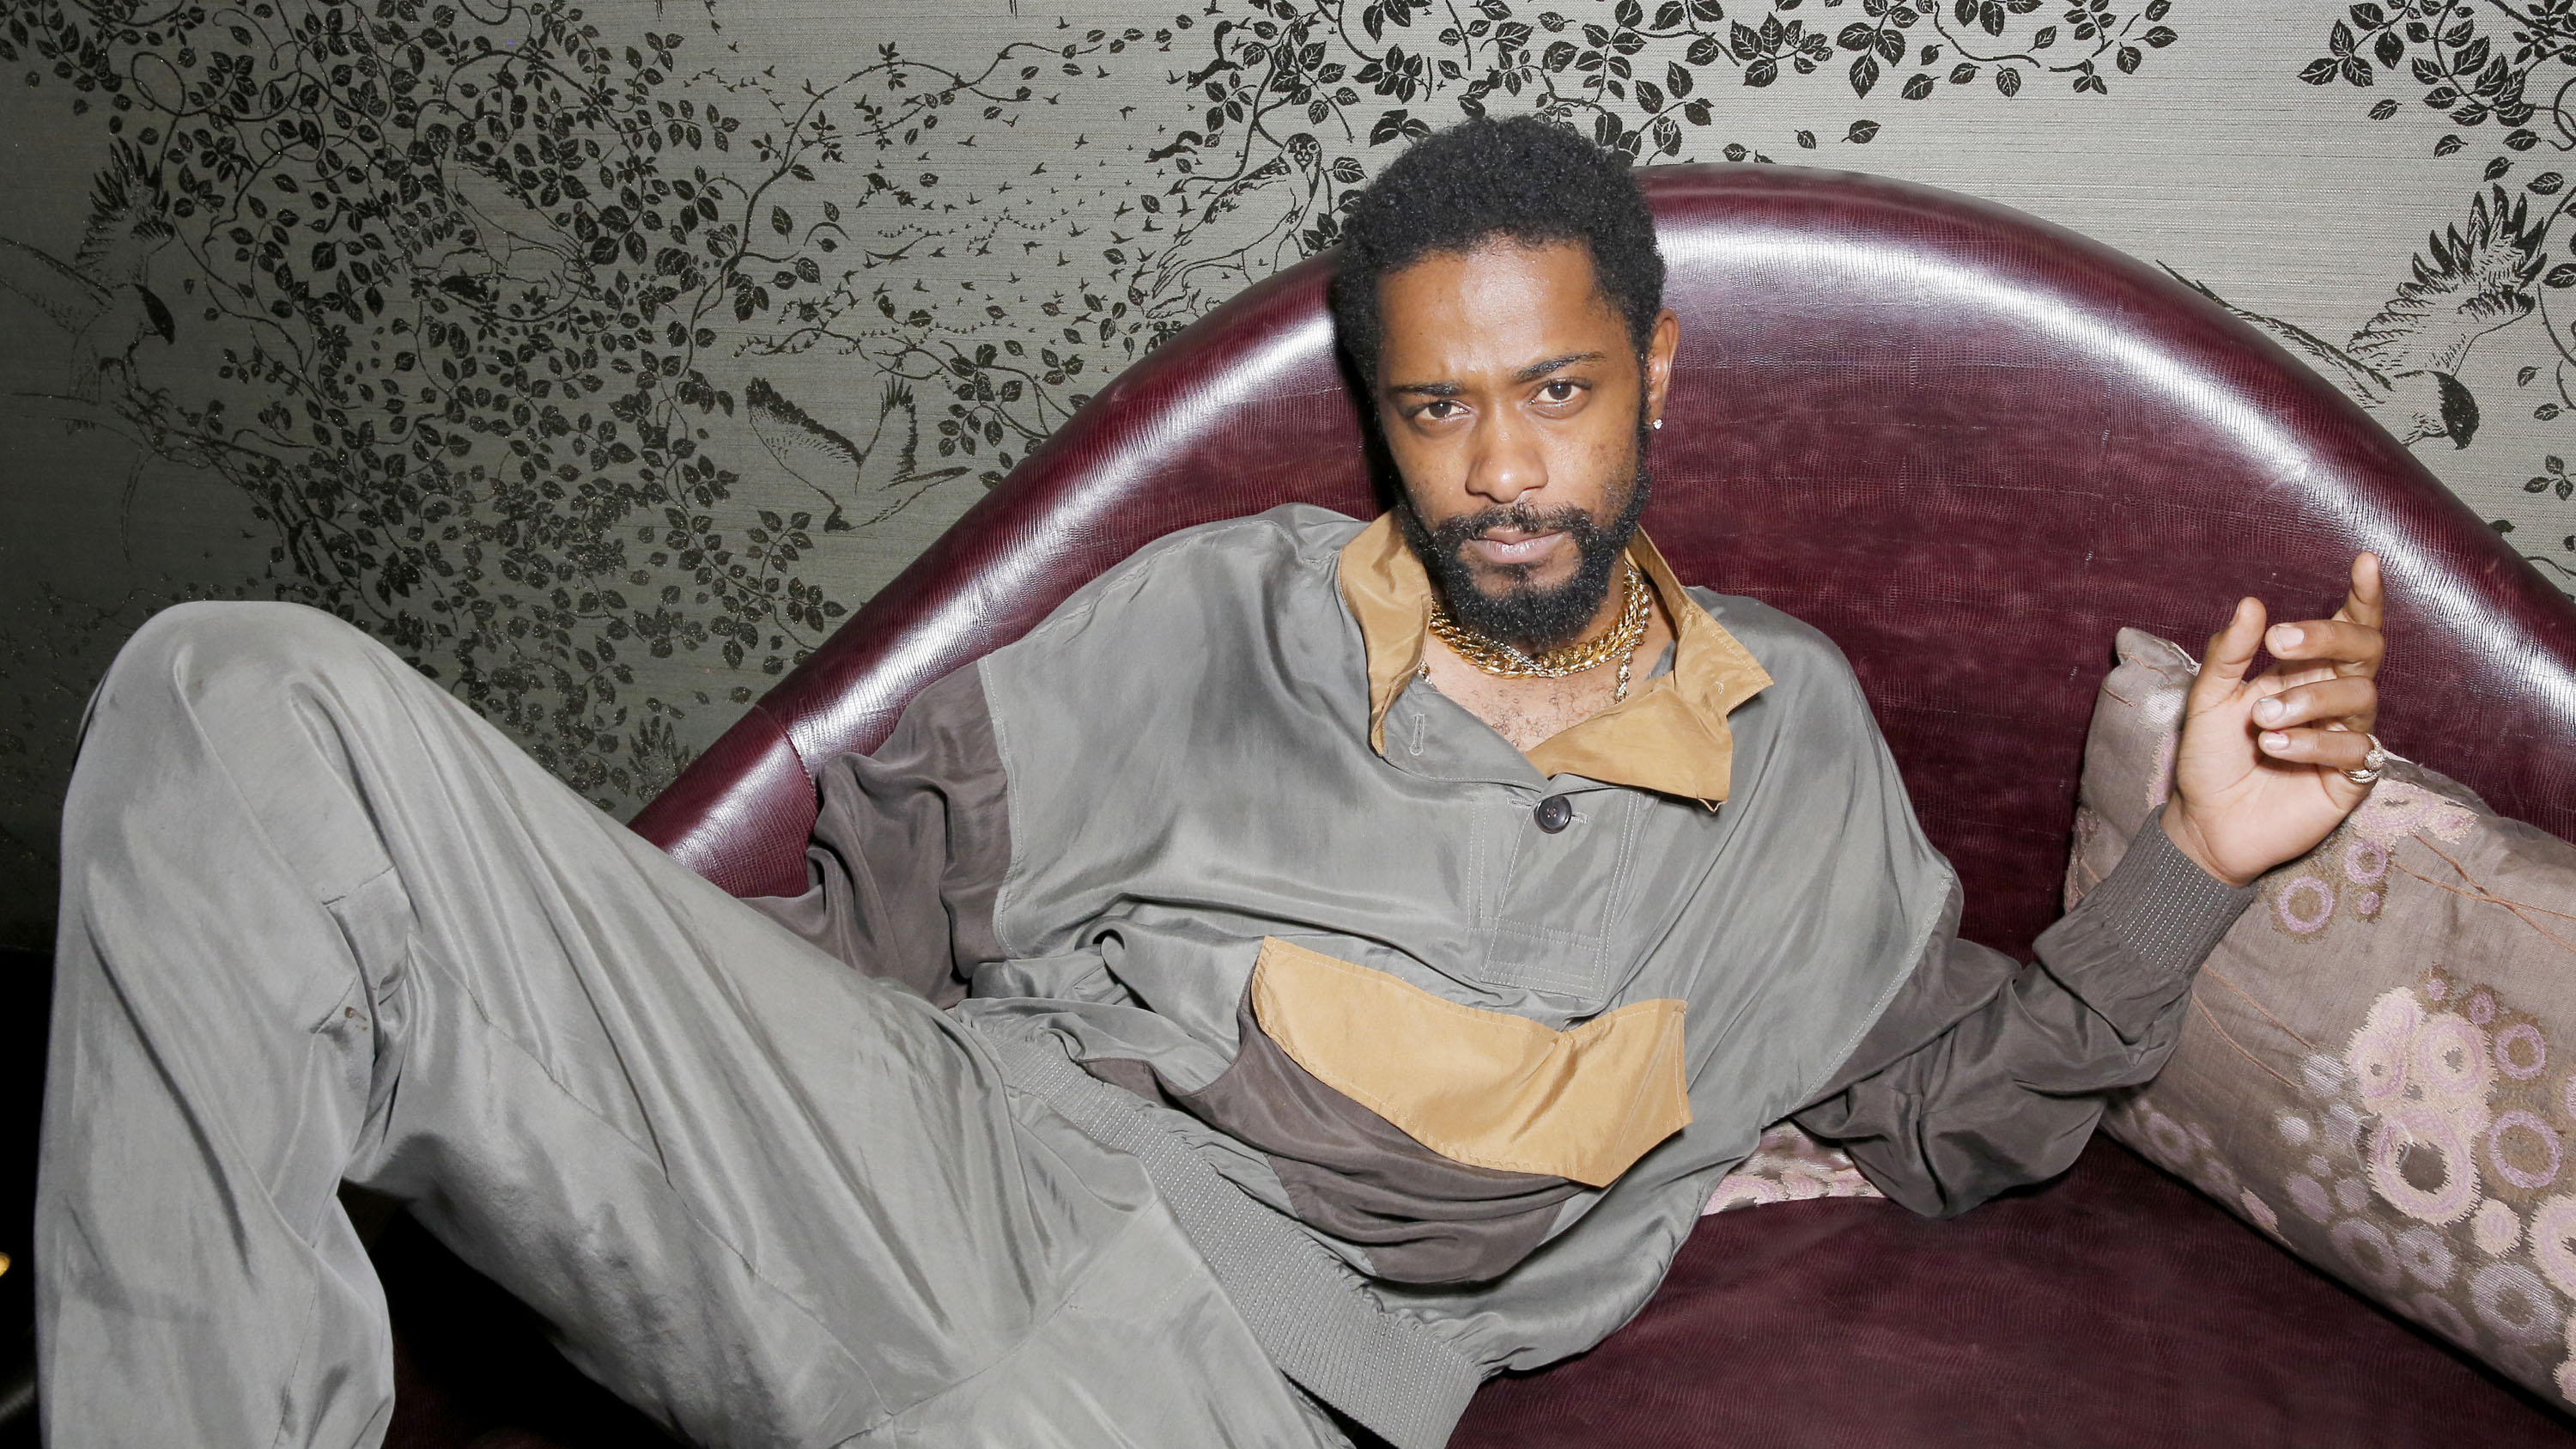 Lakeith Stanfield's Seal of Approval